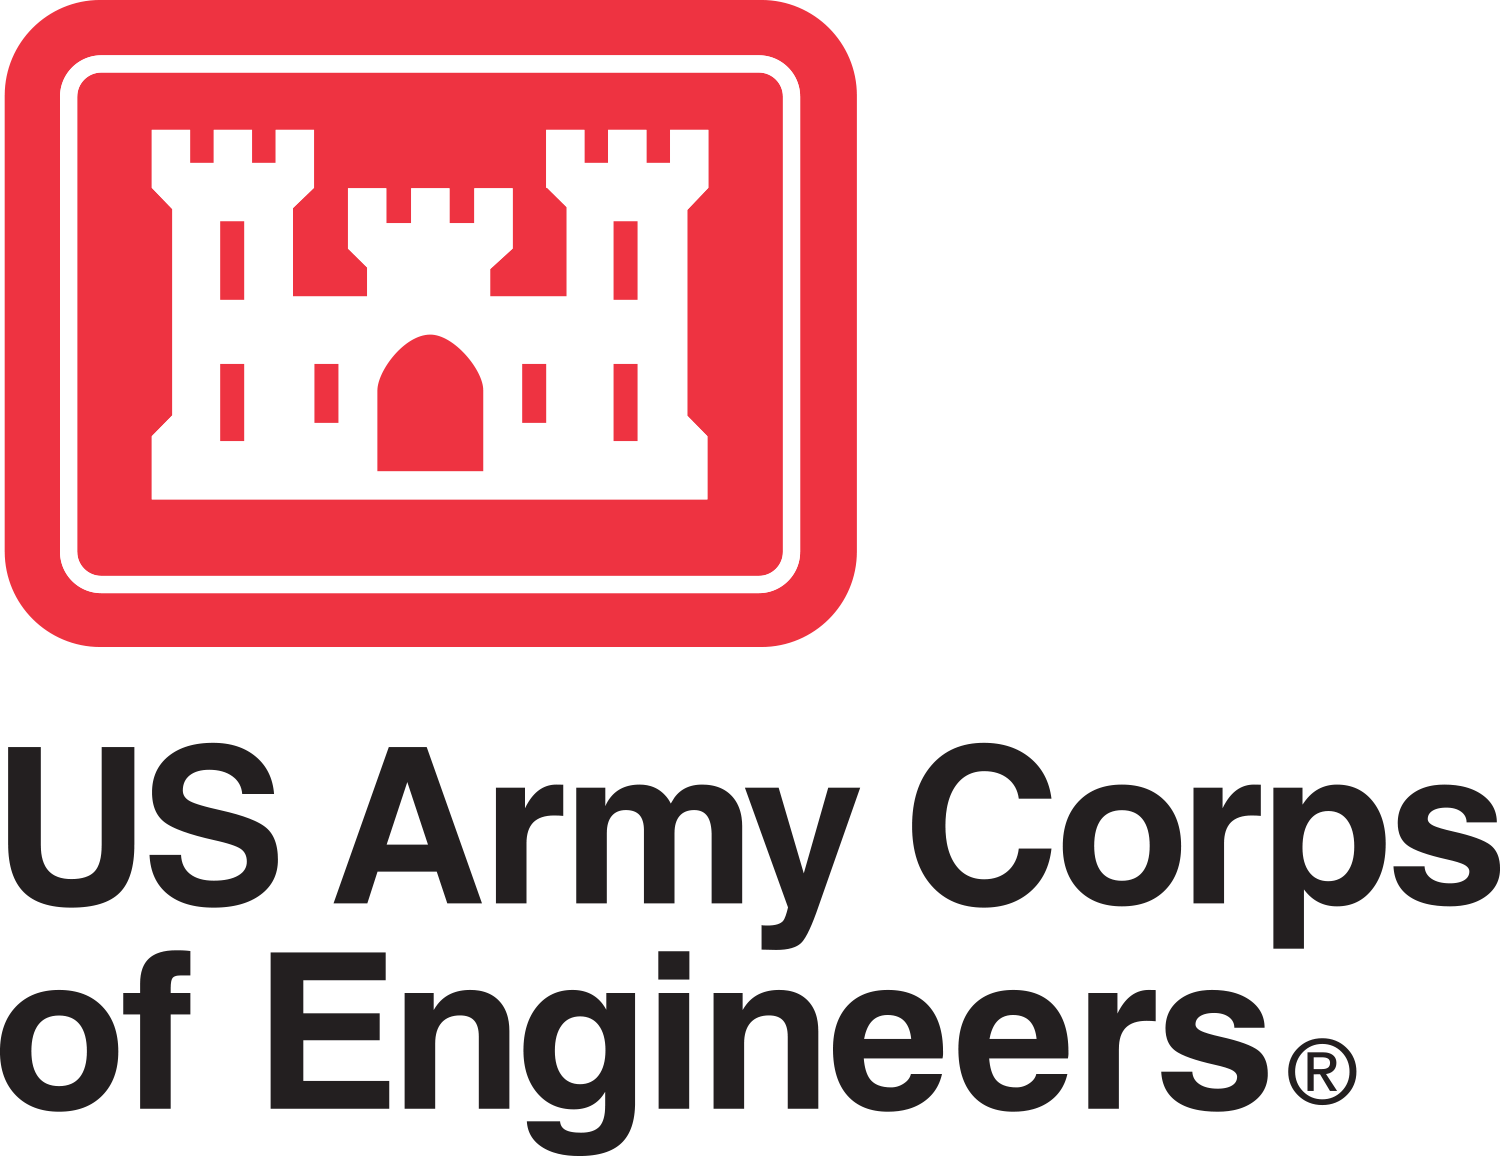 U.S. Army Corps of Engineers logo